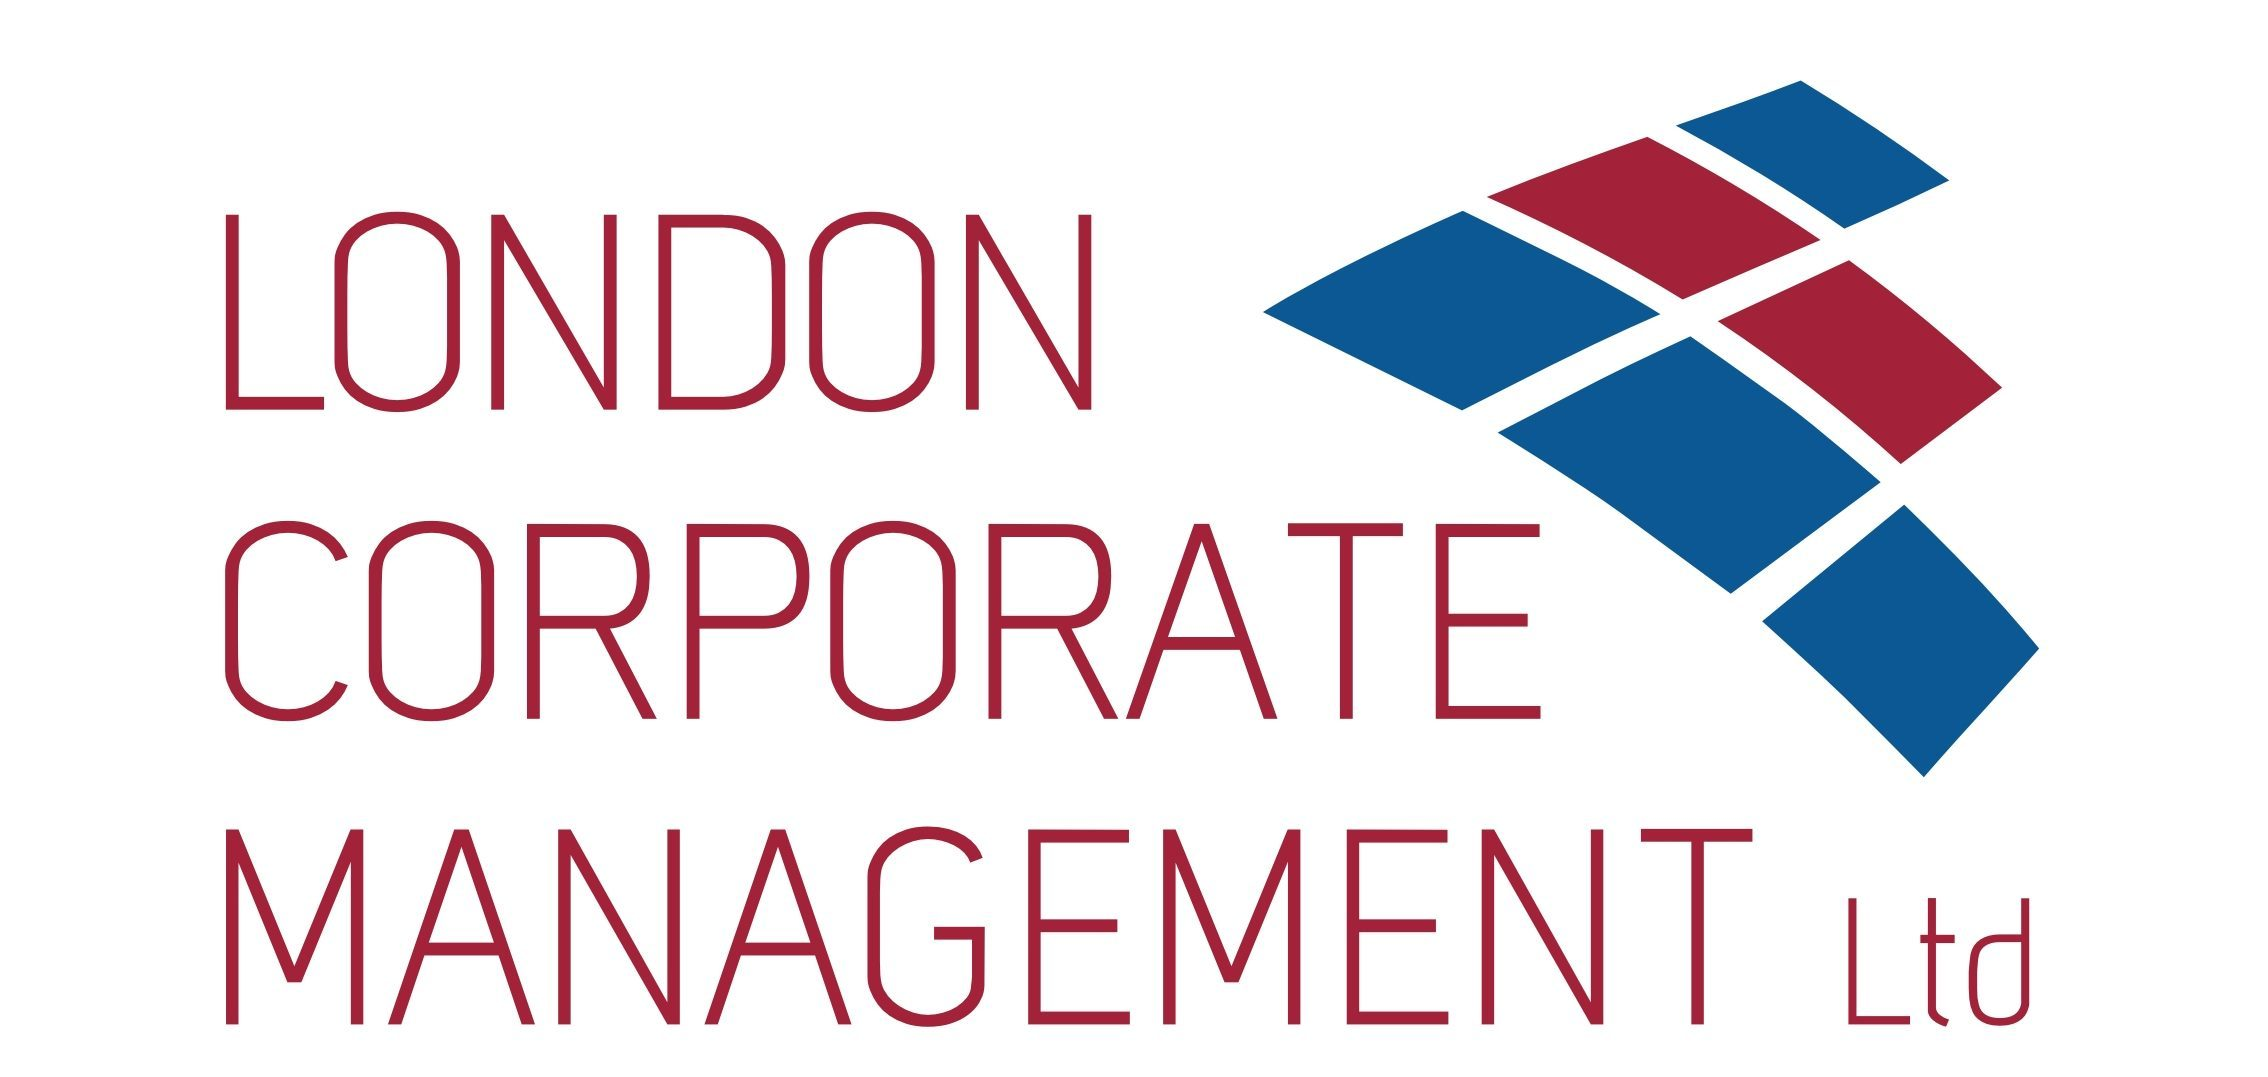 London Corporate Management